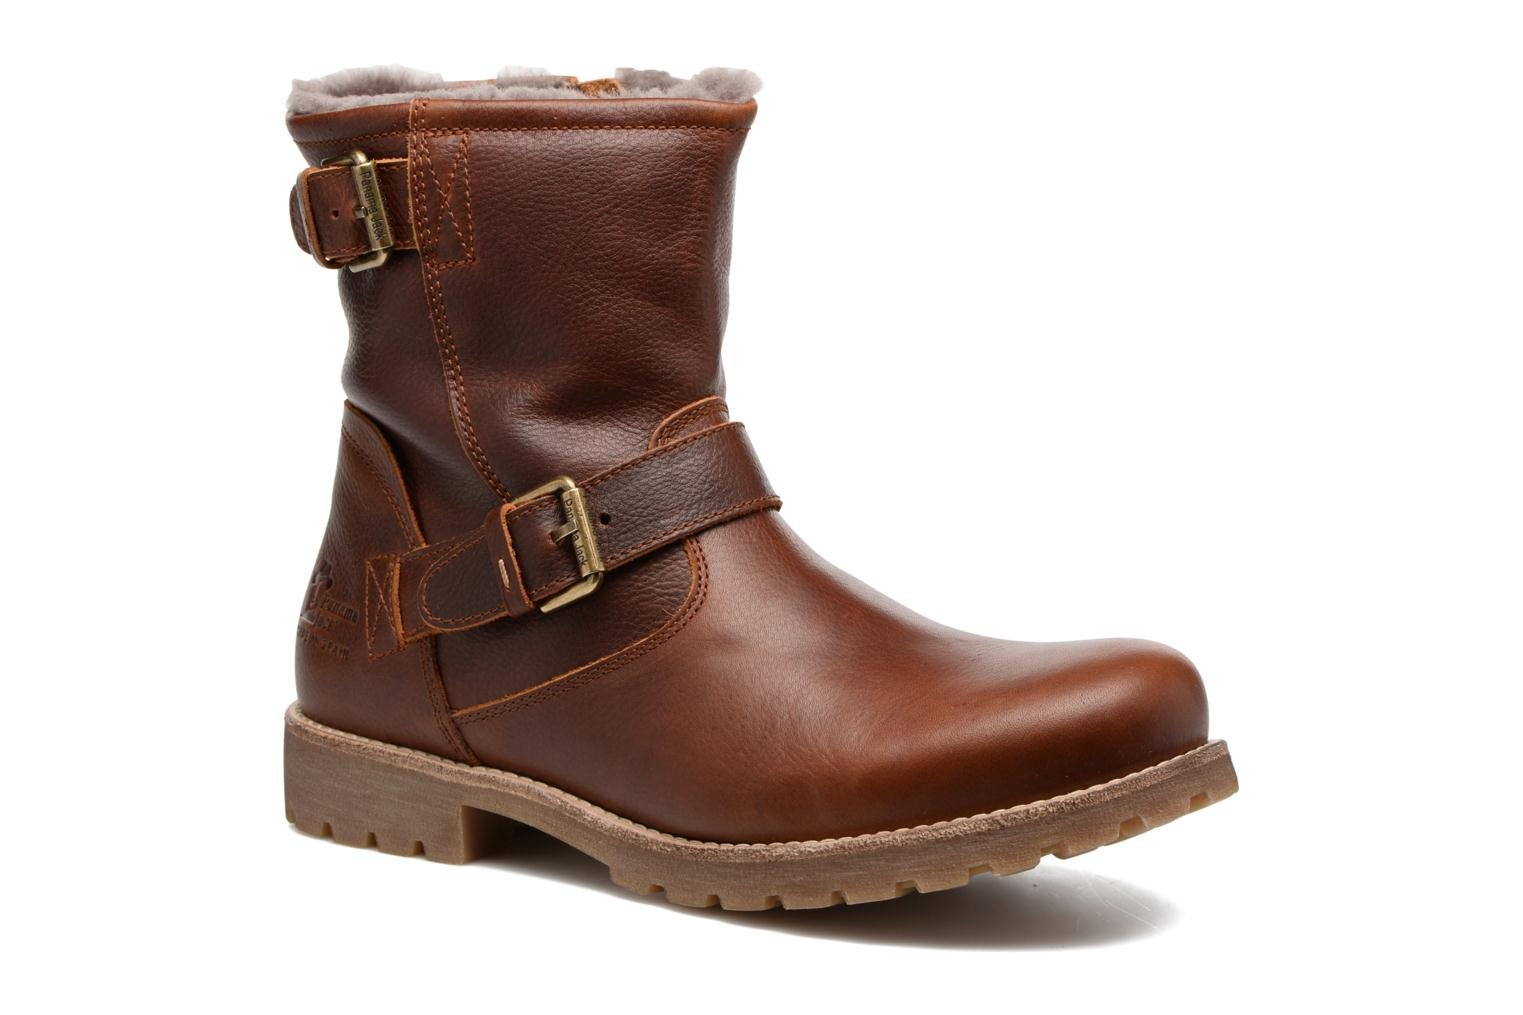 Bottines et boots Panama Jack Faust Igloo C21 Marron vue détail/paire